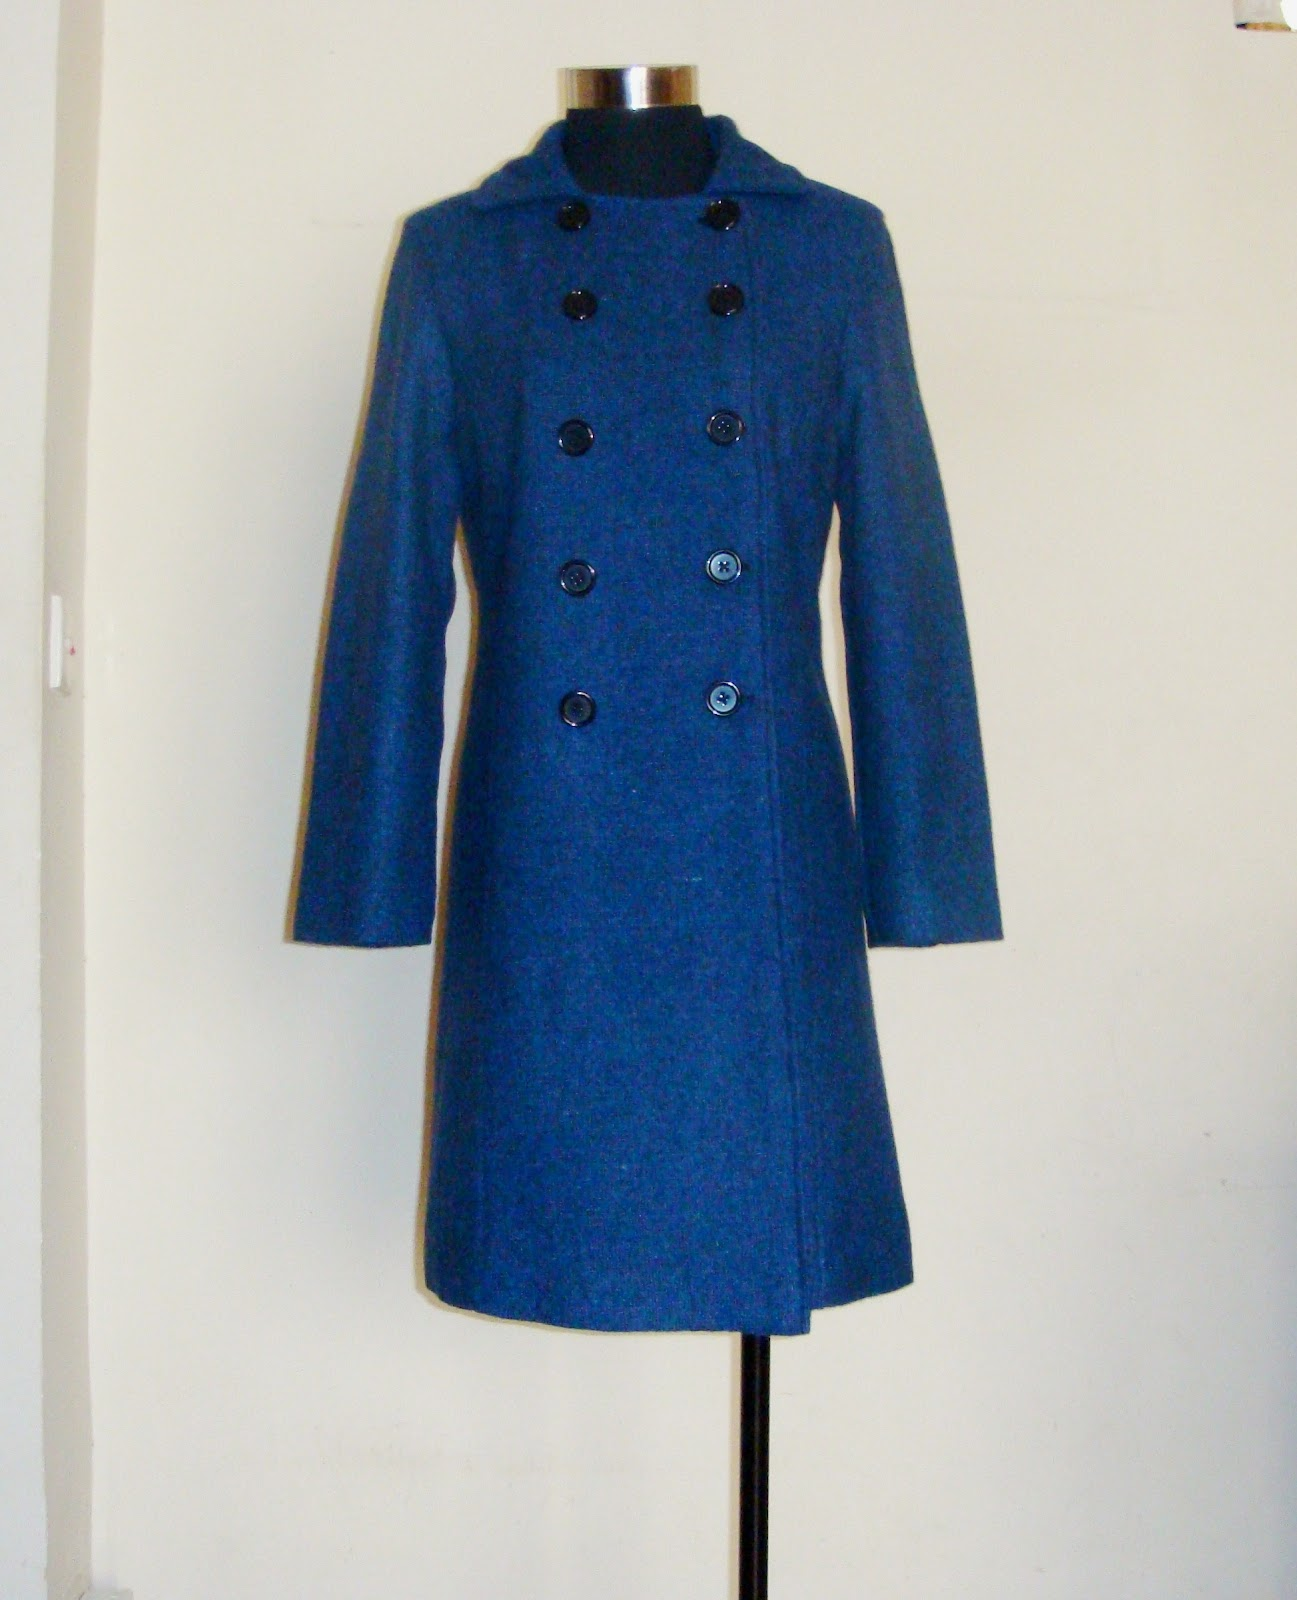 http://velvetribbonsew.blogspot.com/2013/01/my-first-coat_16.html